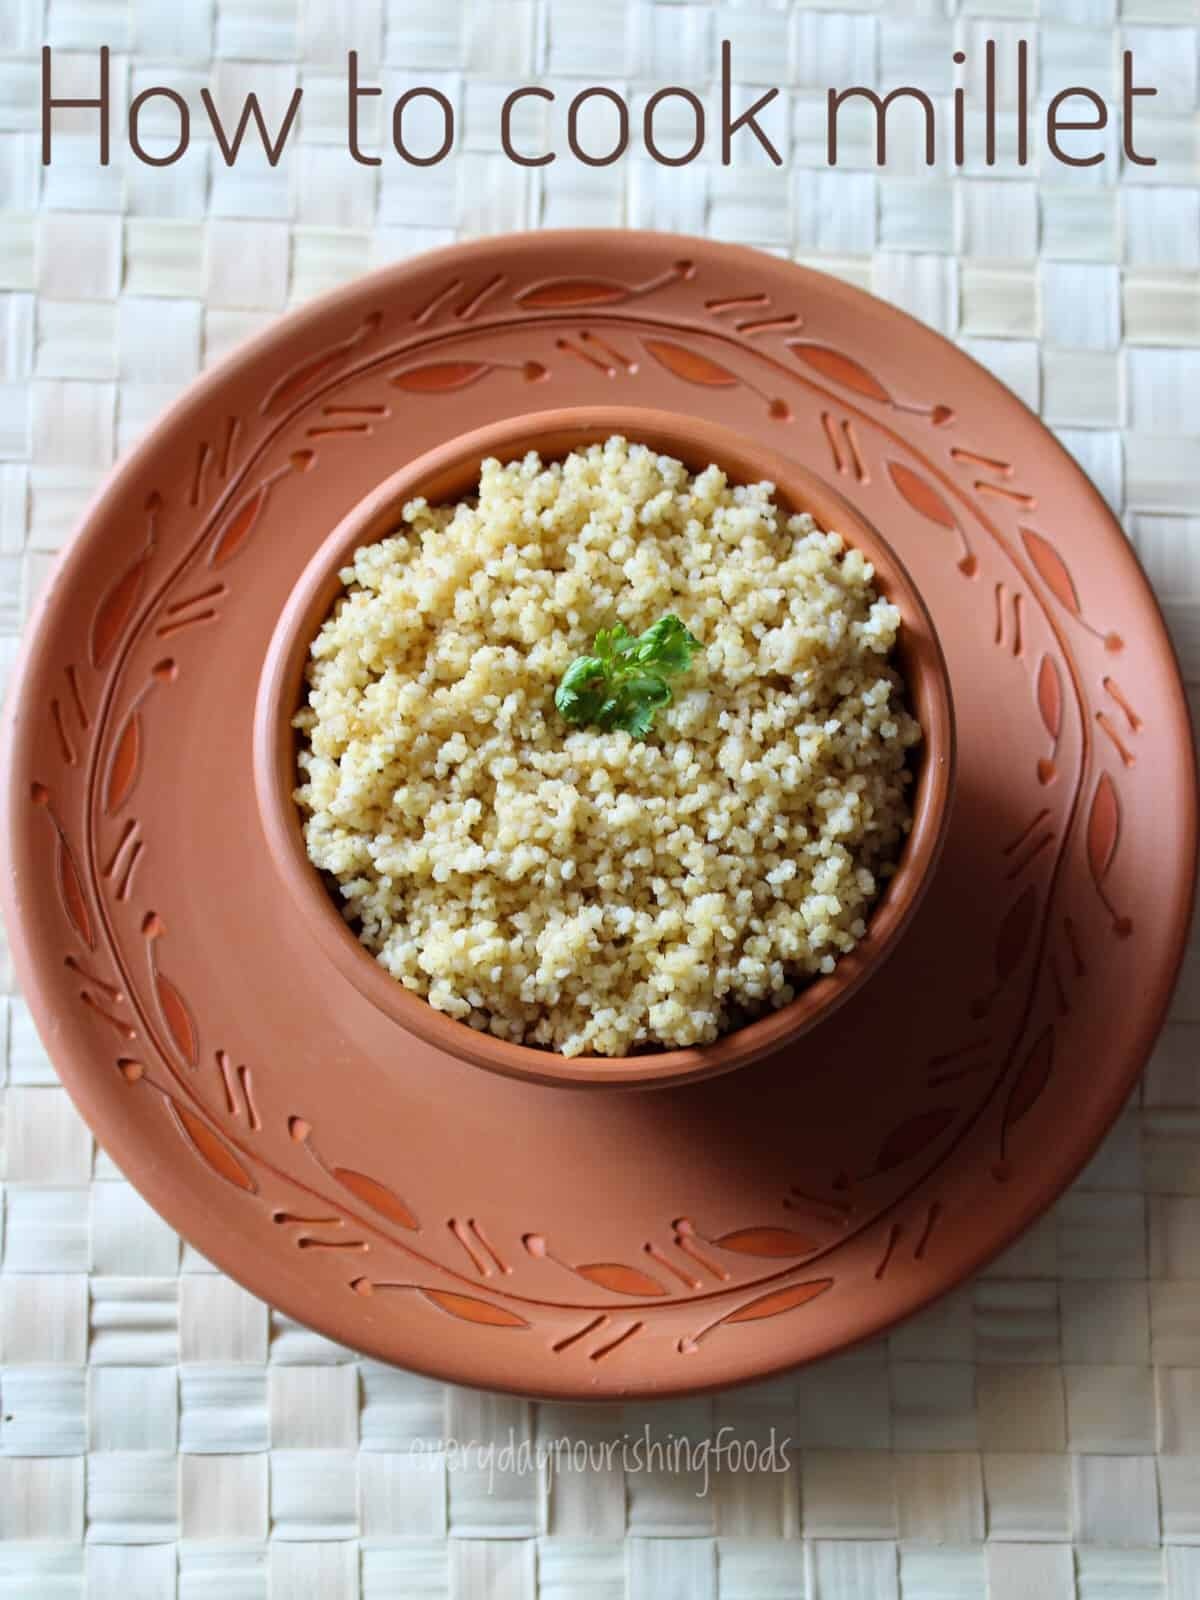 how to cook foxtail millet recipe